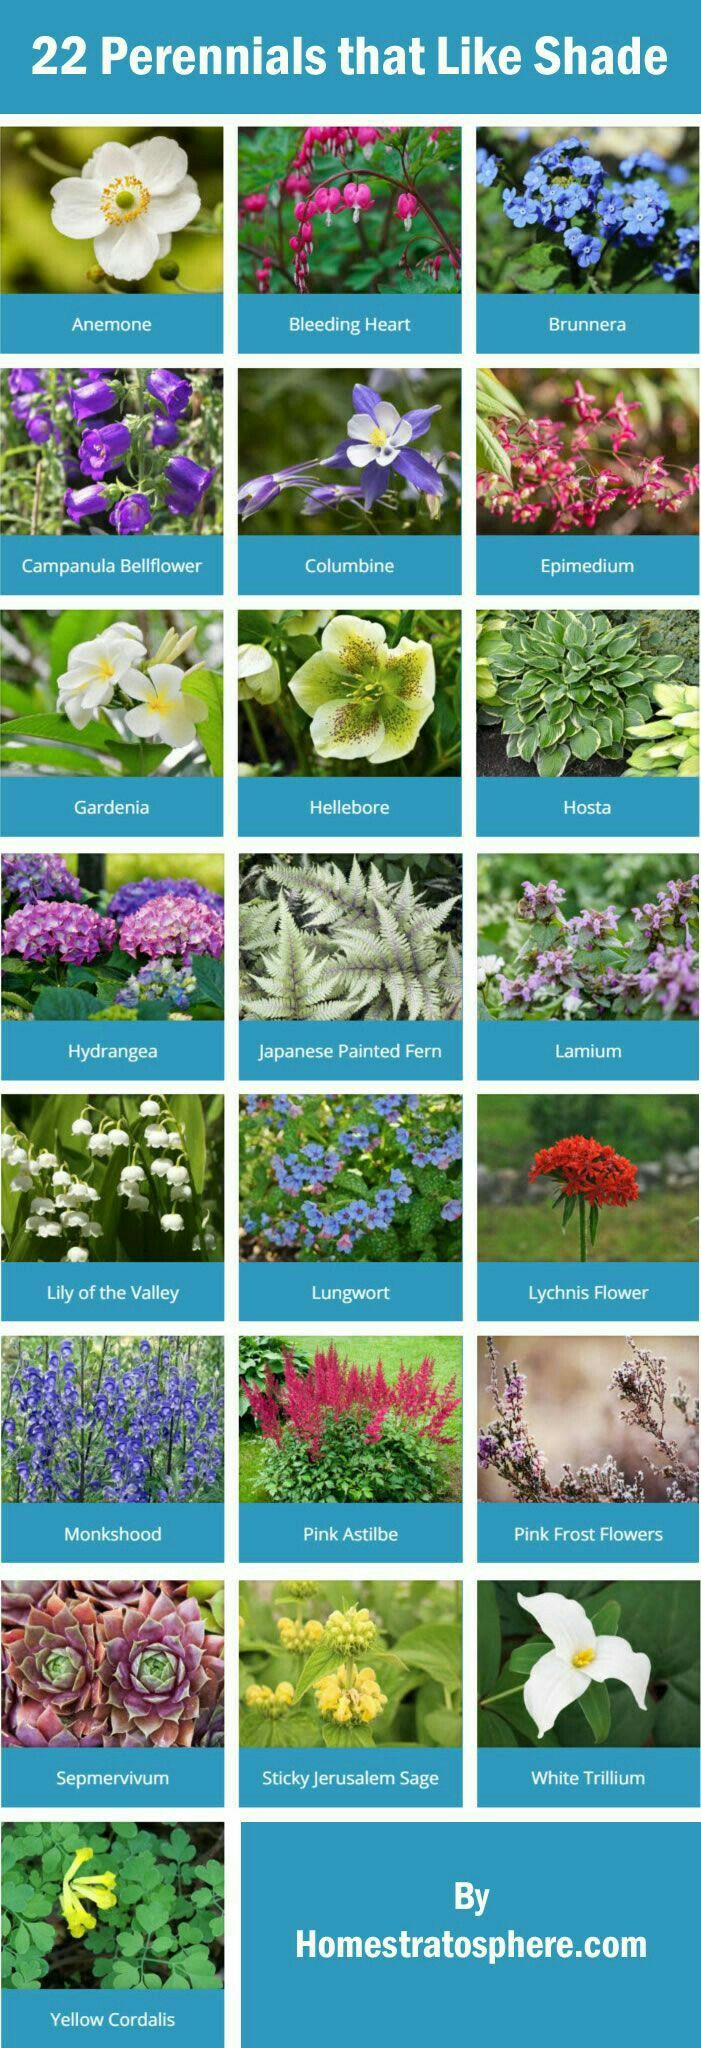 180 Perennials That Do Well In Shade A To Z Let It Grow